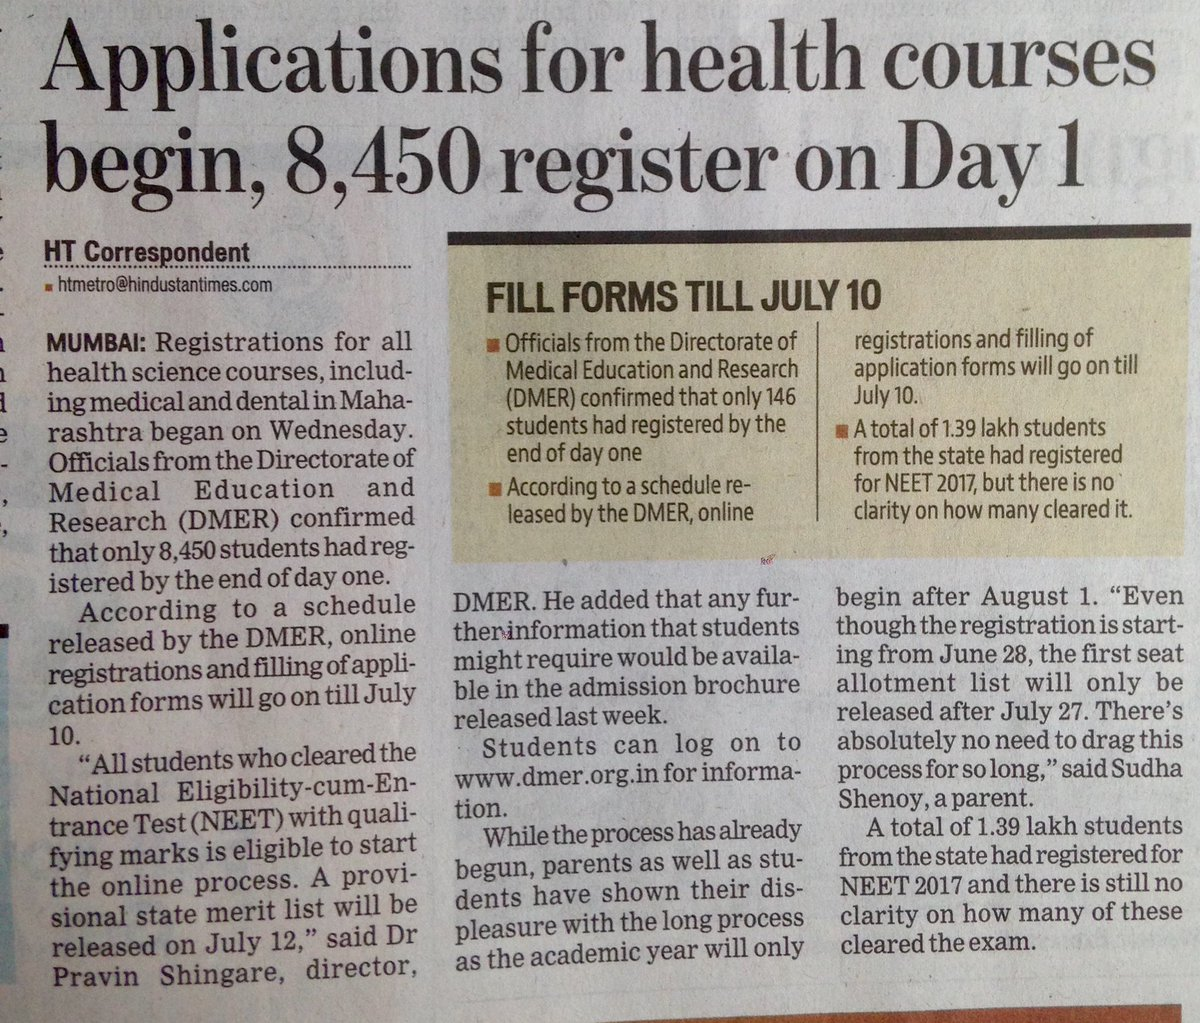 #DMER #Maharashtra #NEET2017UG 1.39 lakh students registered for #NEET @htTweets<br>http://pic.twitter.com/56yHBoBZ7D